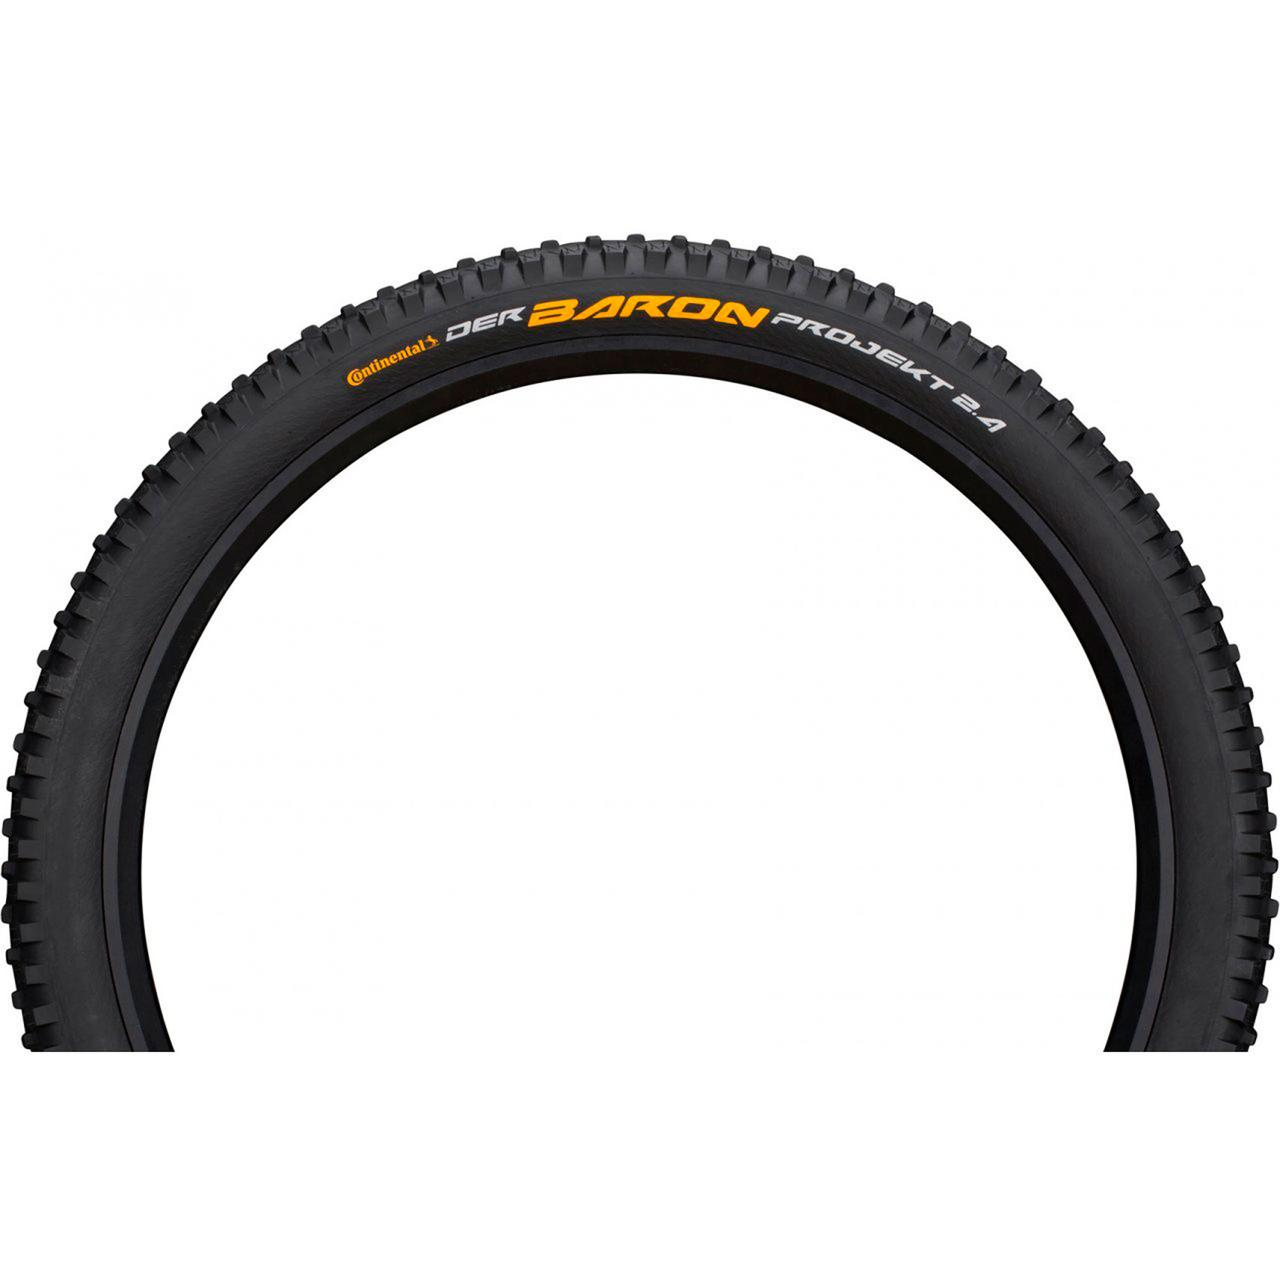 "Покрышка Continental Der Baron Projekt 26""x2.4, Фолдинг, Tubeless, ProTection Apex, Skin"